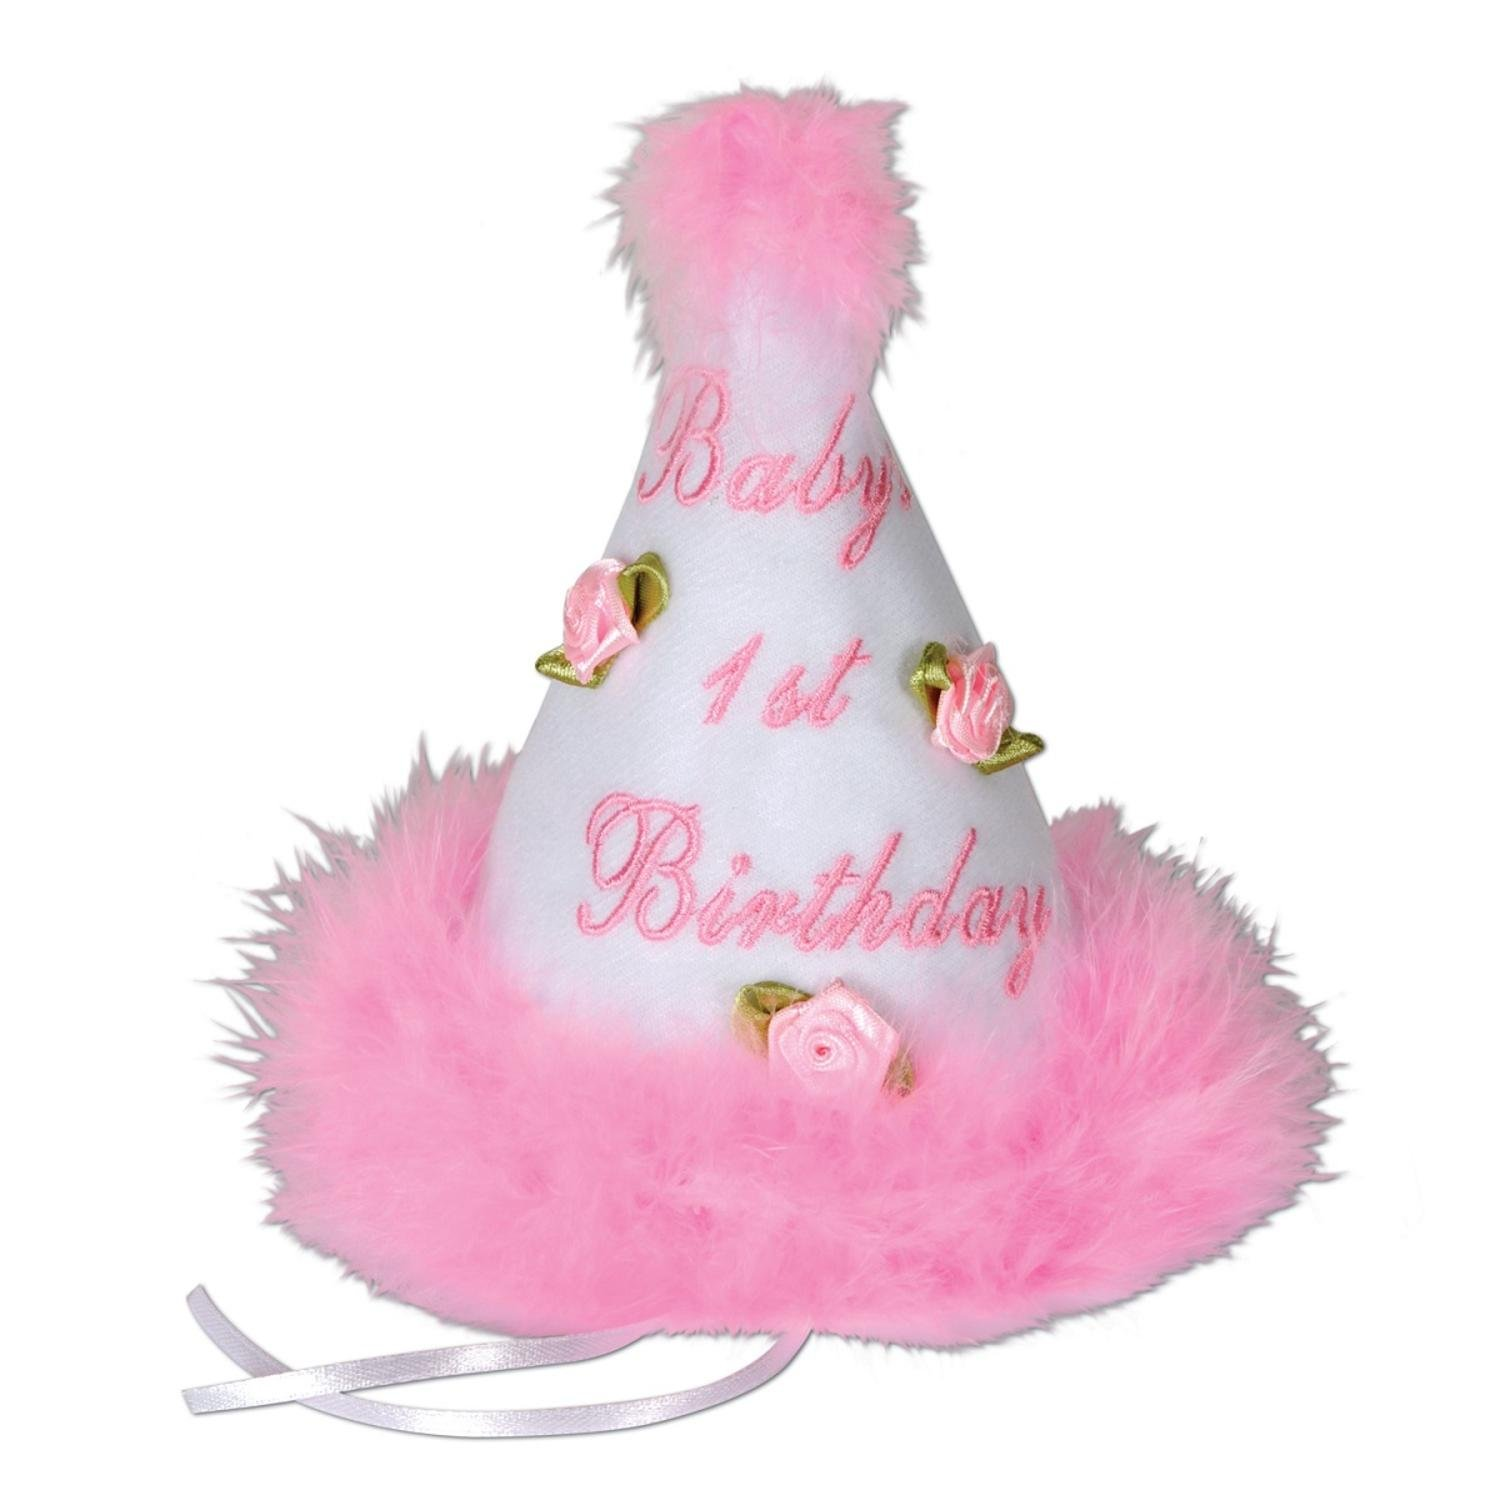 Club Pack of 6 Medium Head Size Baby's 1st Birthday Pink Party Cone Hat with Ribbon Ties 6.5'' by Party Central